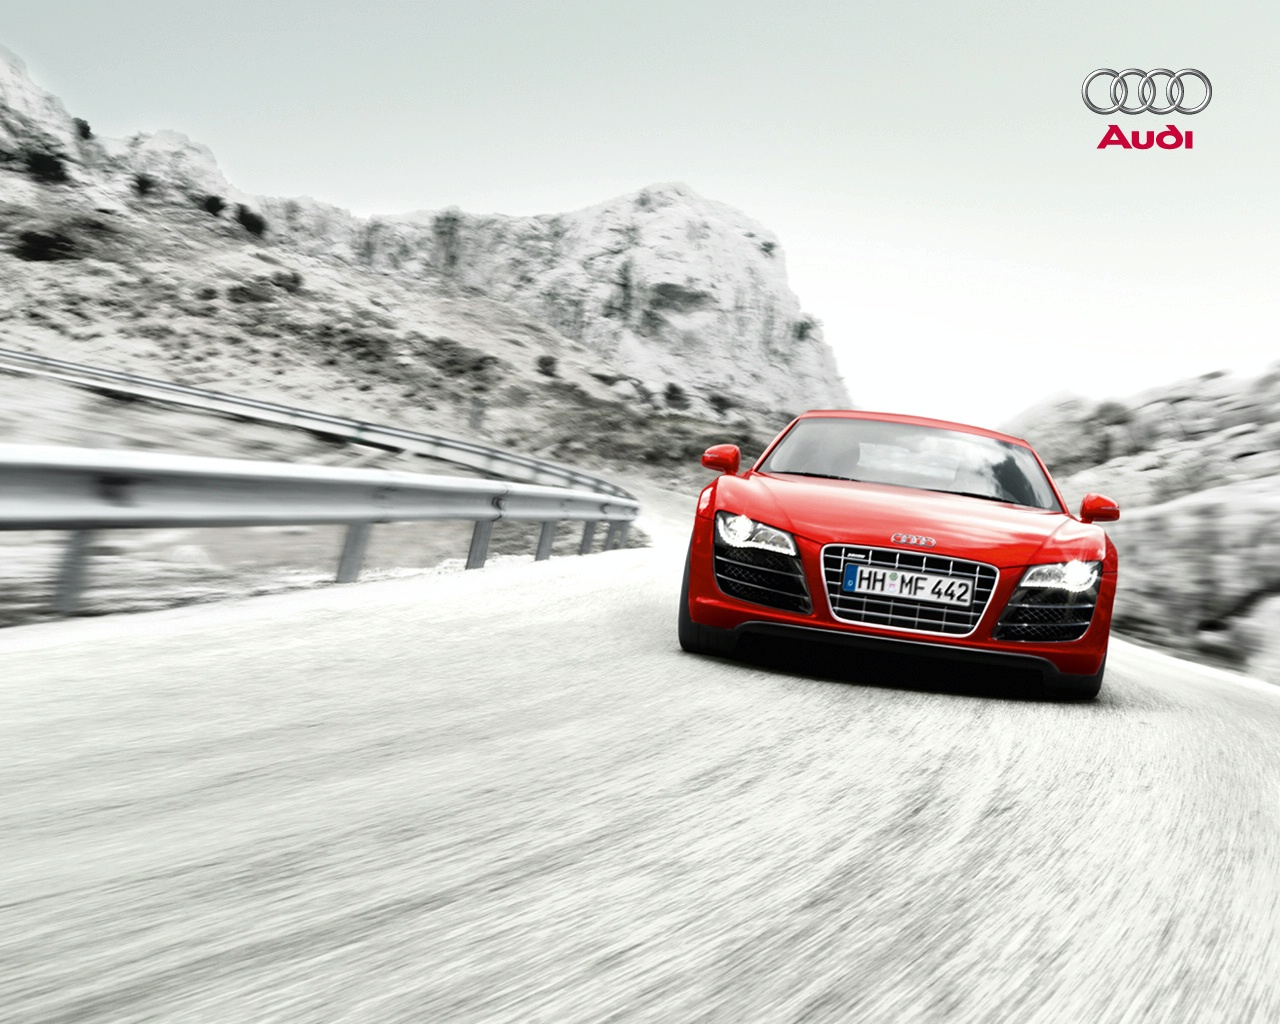 Audirvimg Its Your Auto World New Cars Auto News - Audi official